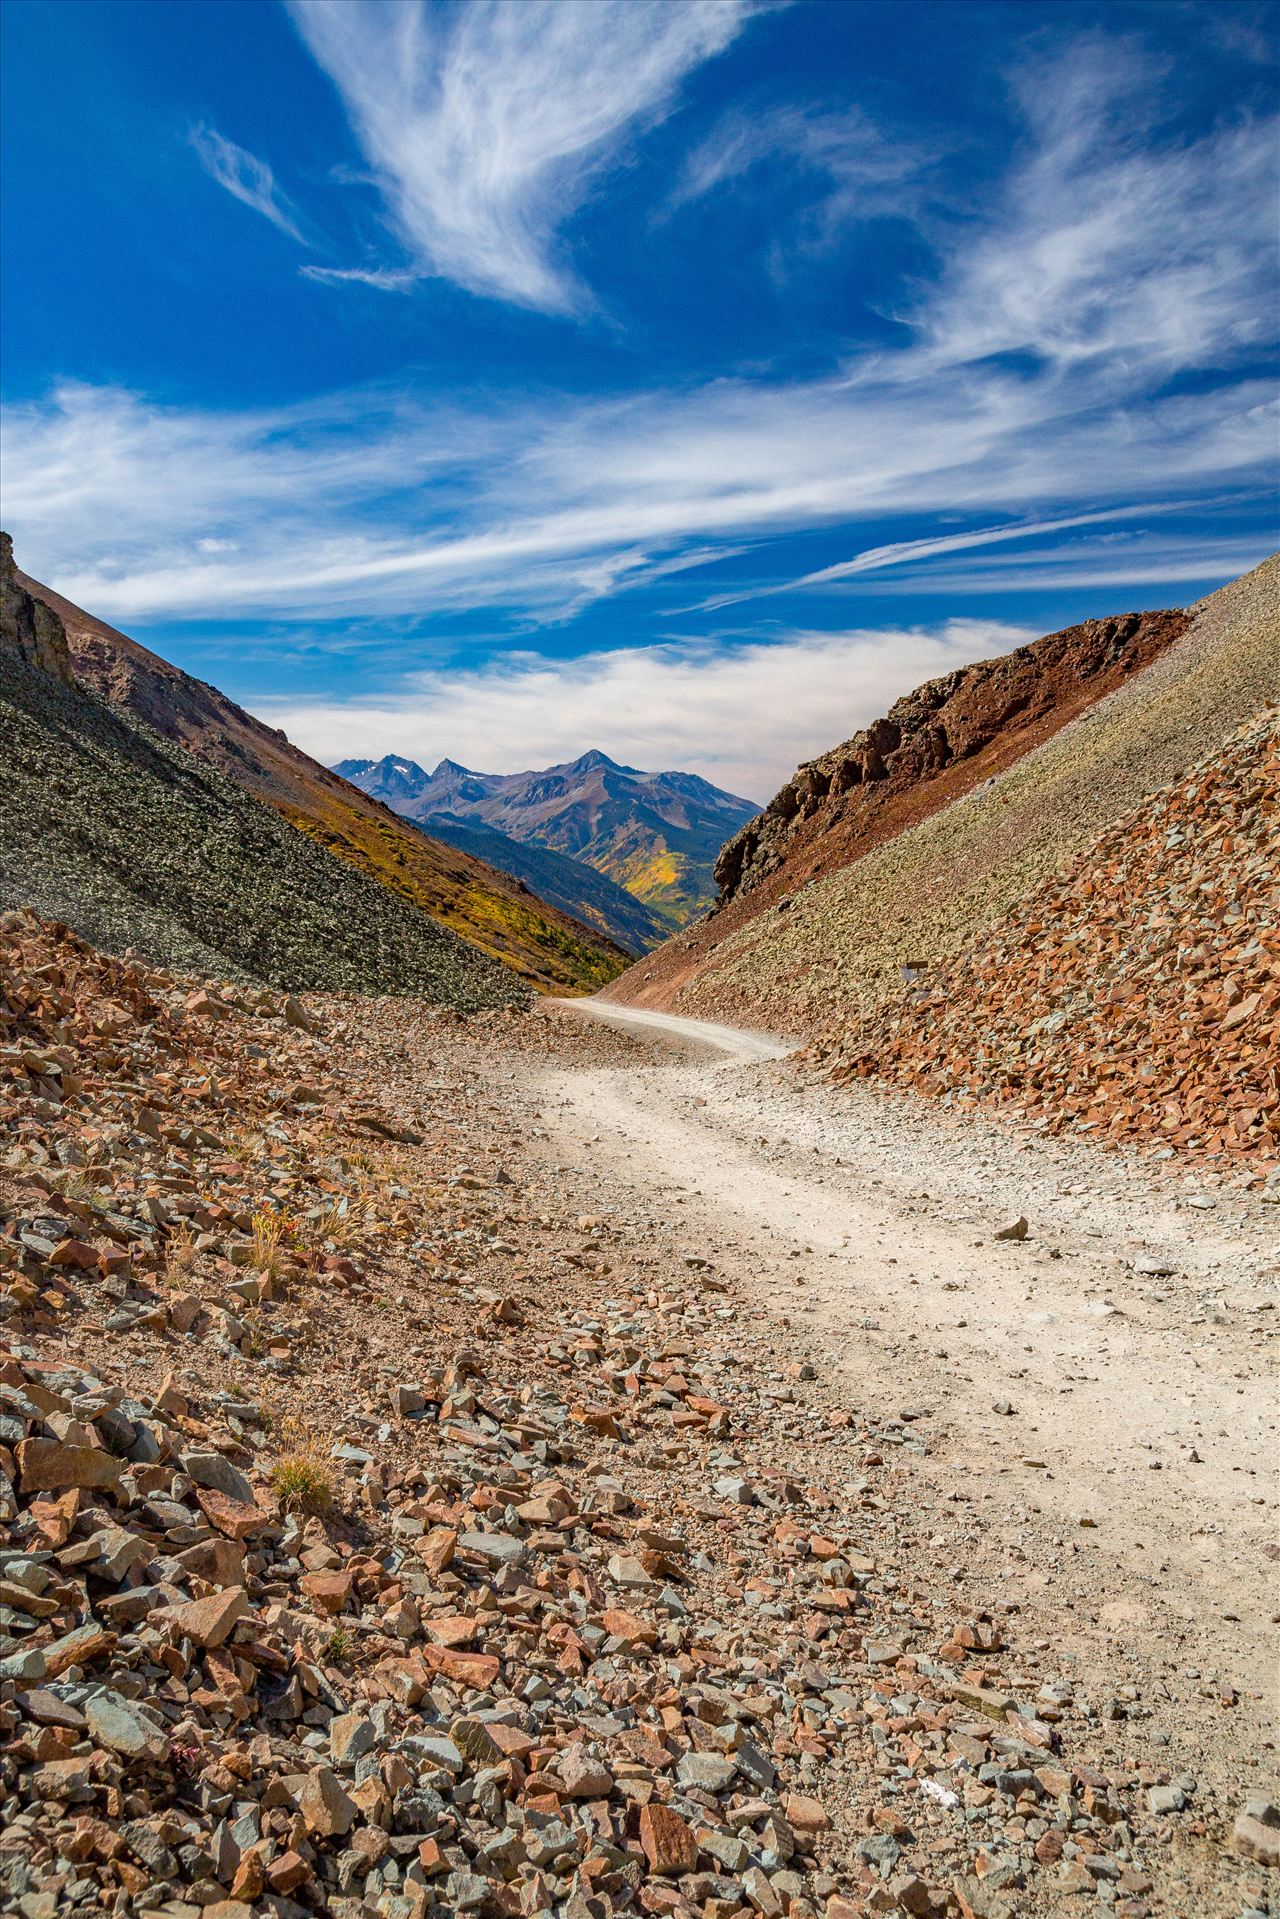 Ophir Pass Summit - The summit of Ophir Pass, between Ouray and Silverton Colorado in the fall. by D Scott Smith